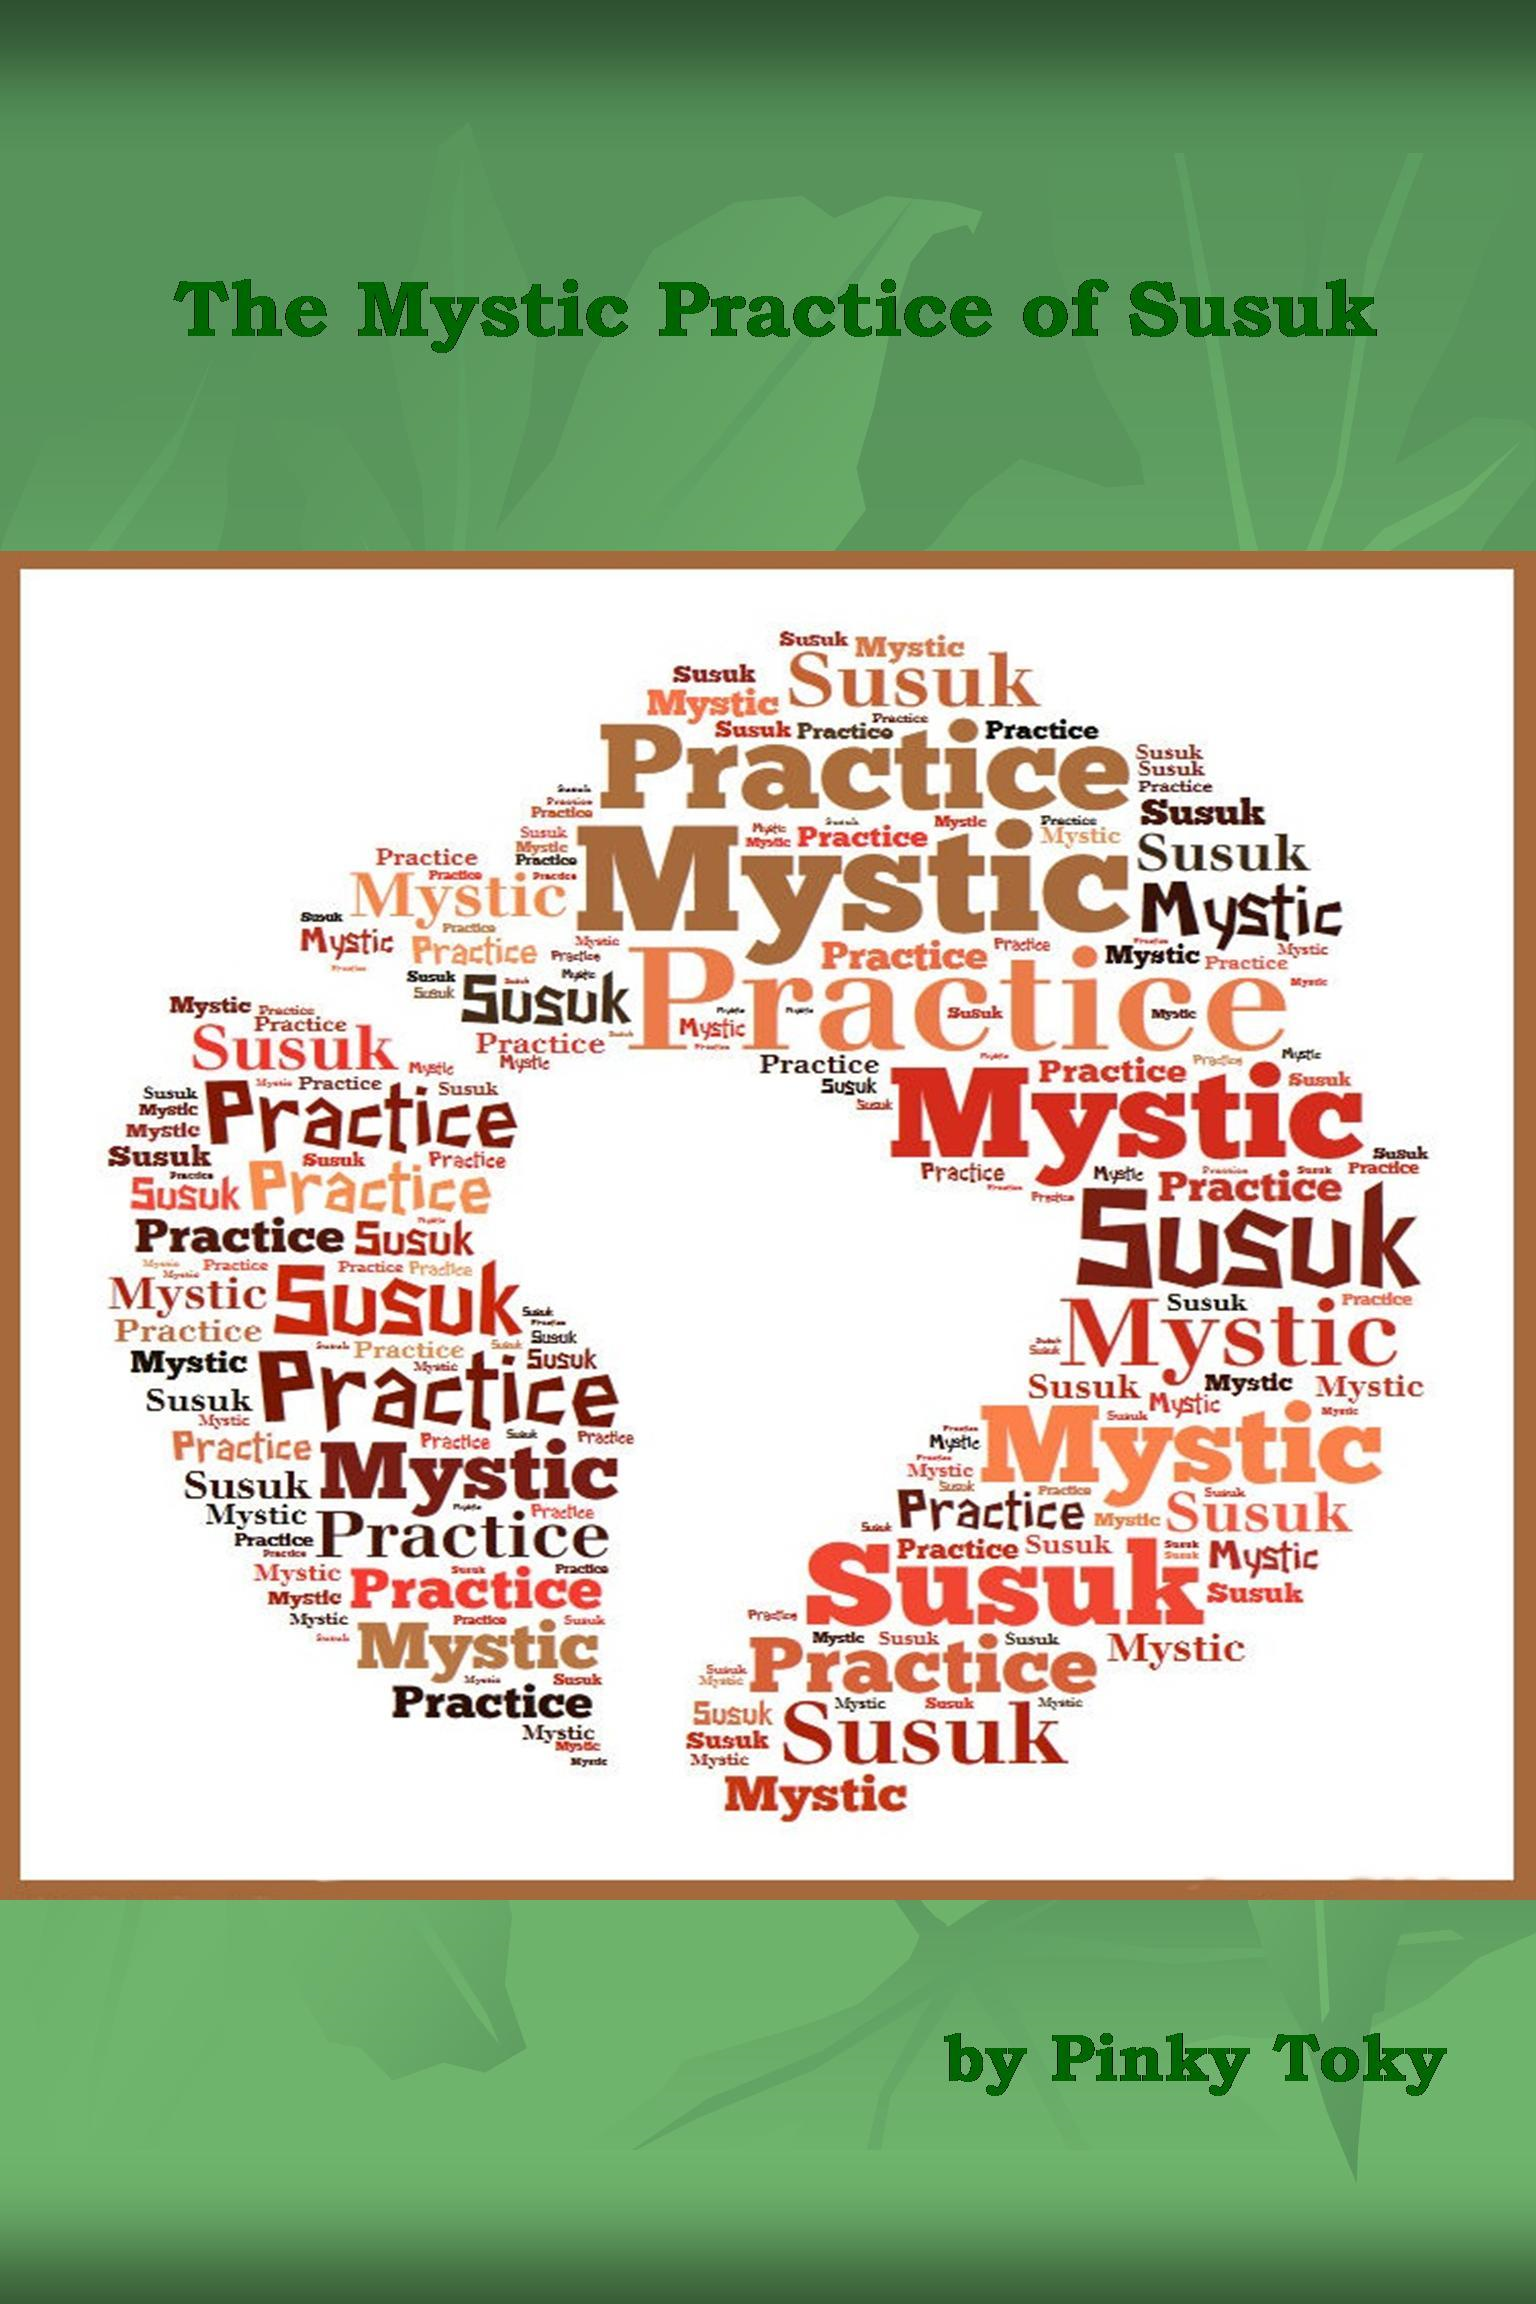 The Mystic Practice of Susuk